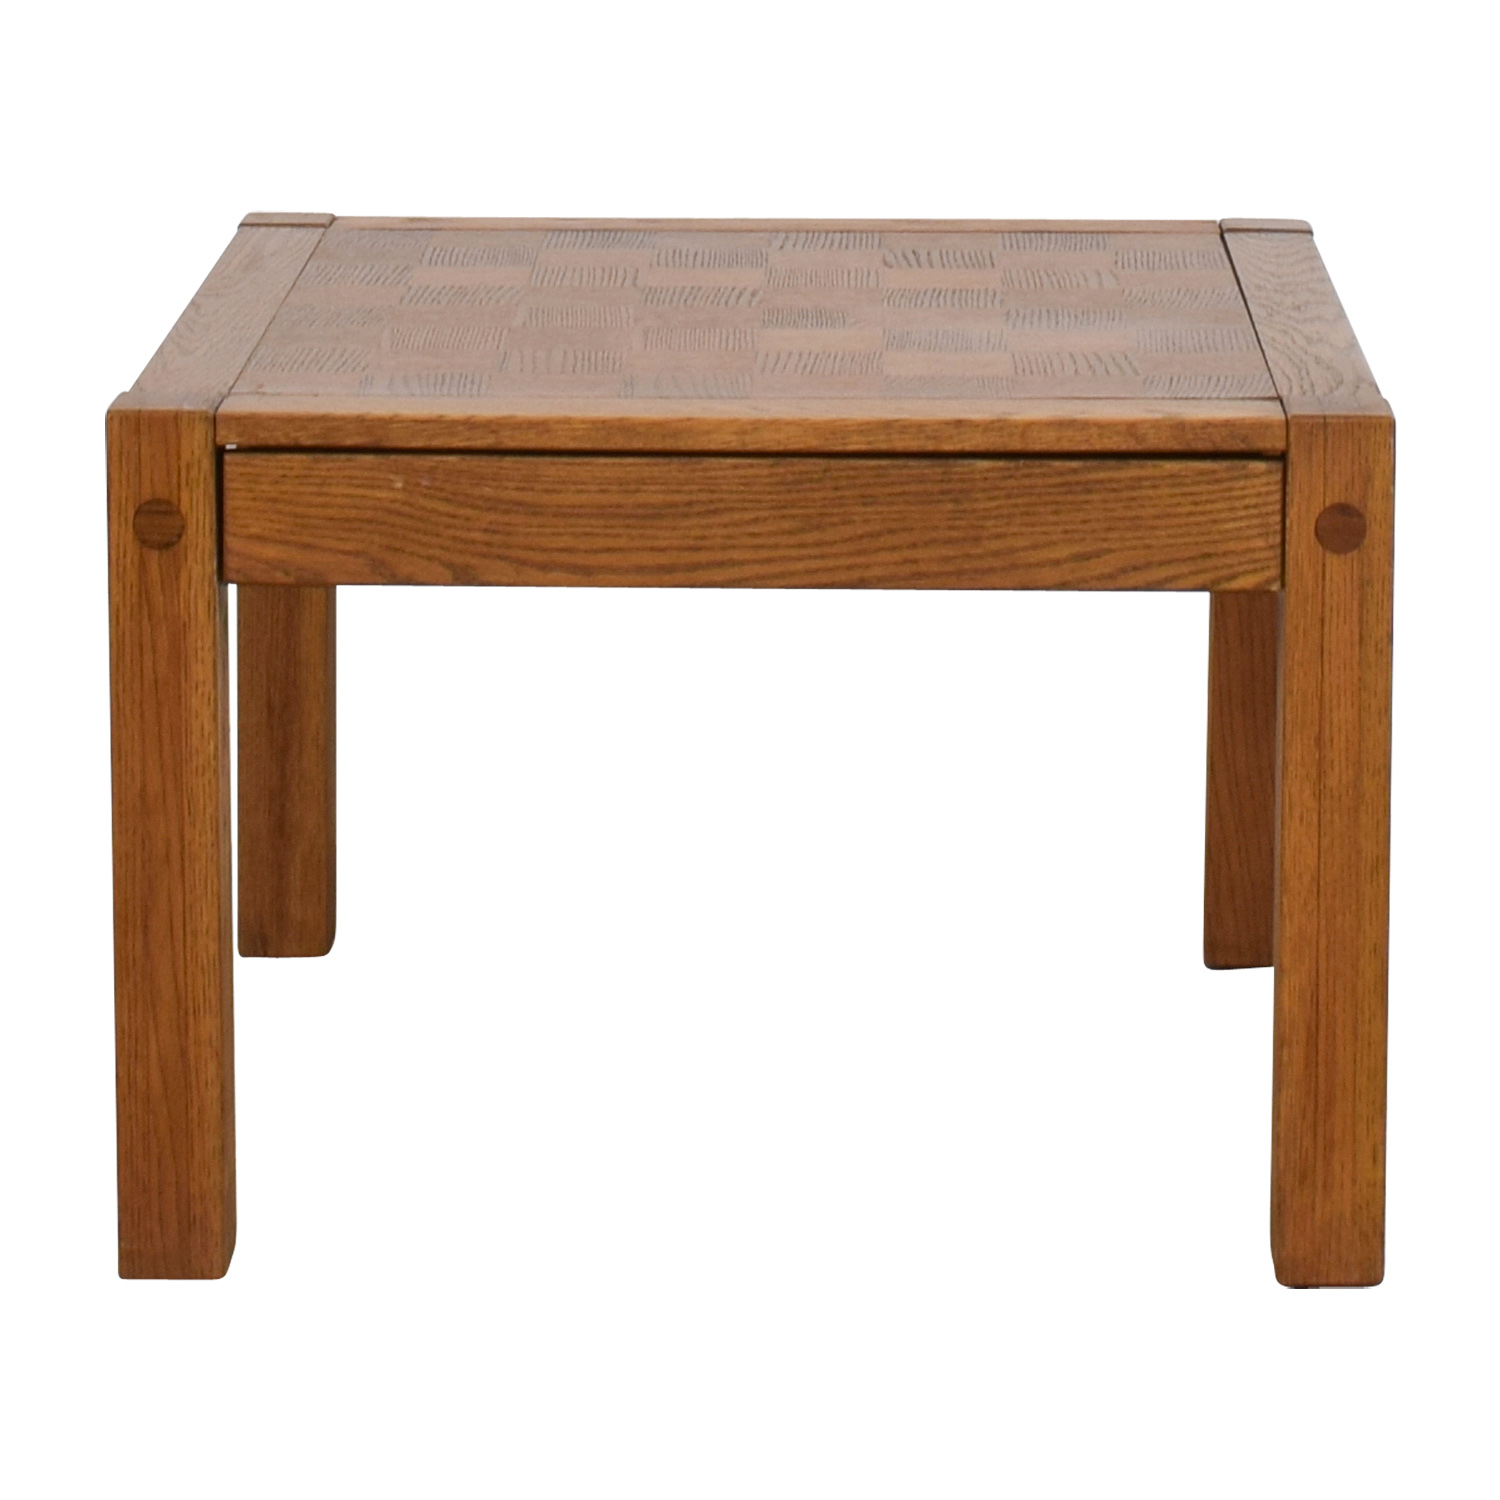 Conant Ball Single Drawer Checkerboard Coffee Table / Coffee Tables